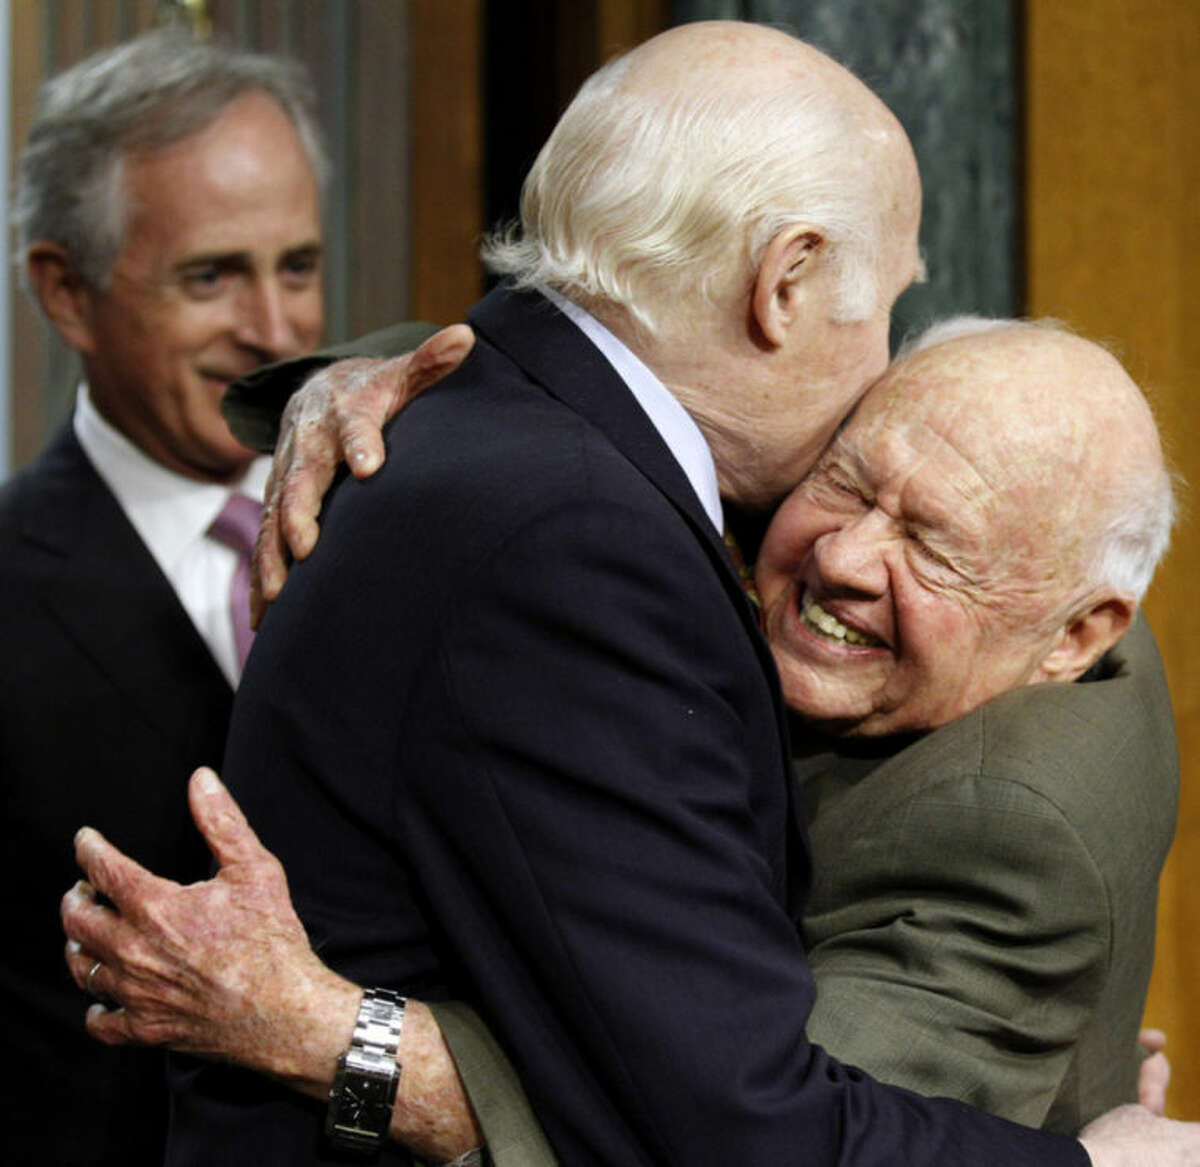 FILE - In this Wednesday, March 2, 2011, file photo, Senate Aging Committee Chairman Sen. Herb Kohl. D-Wis., center, gets a hug from entertainer Mickey Rooney, right, on Capitol Hill in Washington, as Sen. Bob Corker, R-Tenn., looks on at left, prior to Rooney testifying about elder abuse, before the committee. Rooney, a Hollywood legend whose career spanned more than 80 years, has died. He was 93. Los Angeles Police Commander Andrew Smith said that Rooney was with his family when he died Sunday, April 6, 2014, at his North Hollywood home. (AP Photo/Alex Brandon, File)